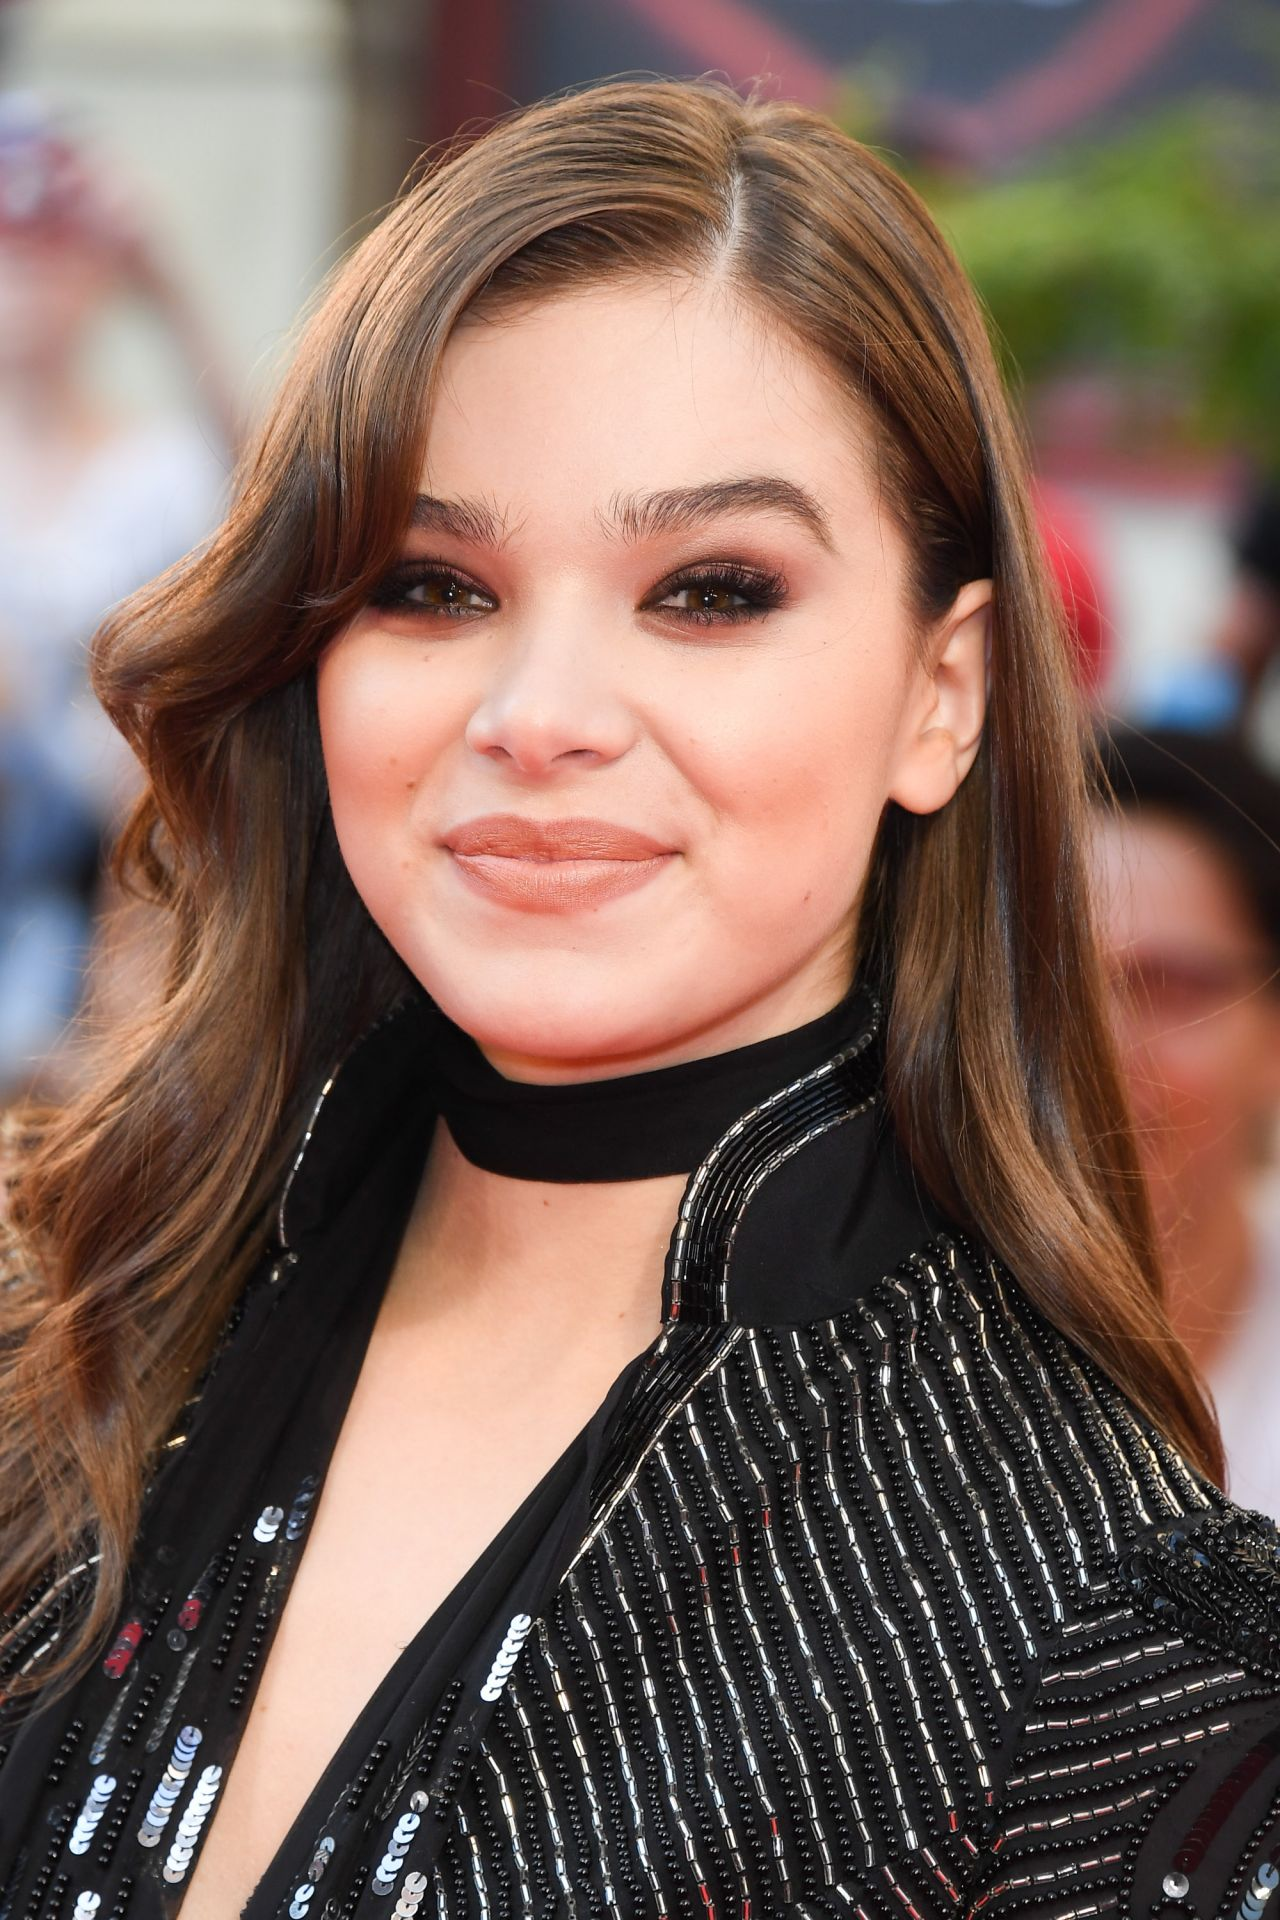 Hailee Steinfeld On The Cover Of Fashion Magazine March: 2016 MuchMusic Video Awards In Toronto